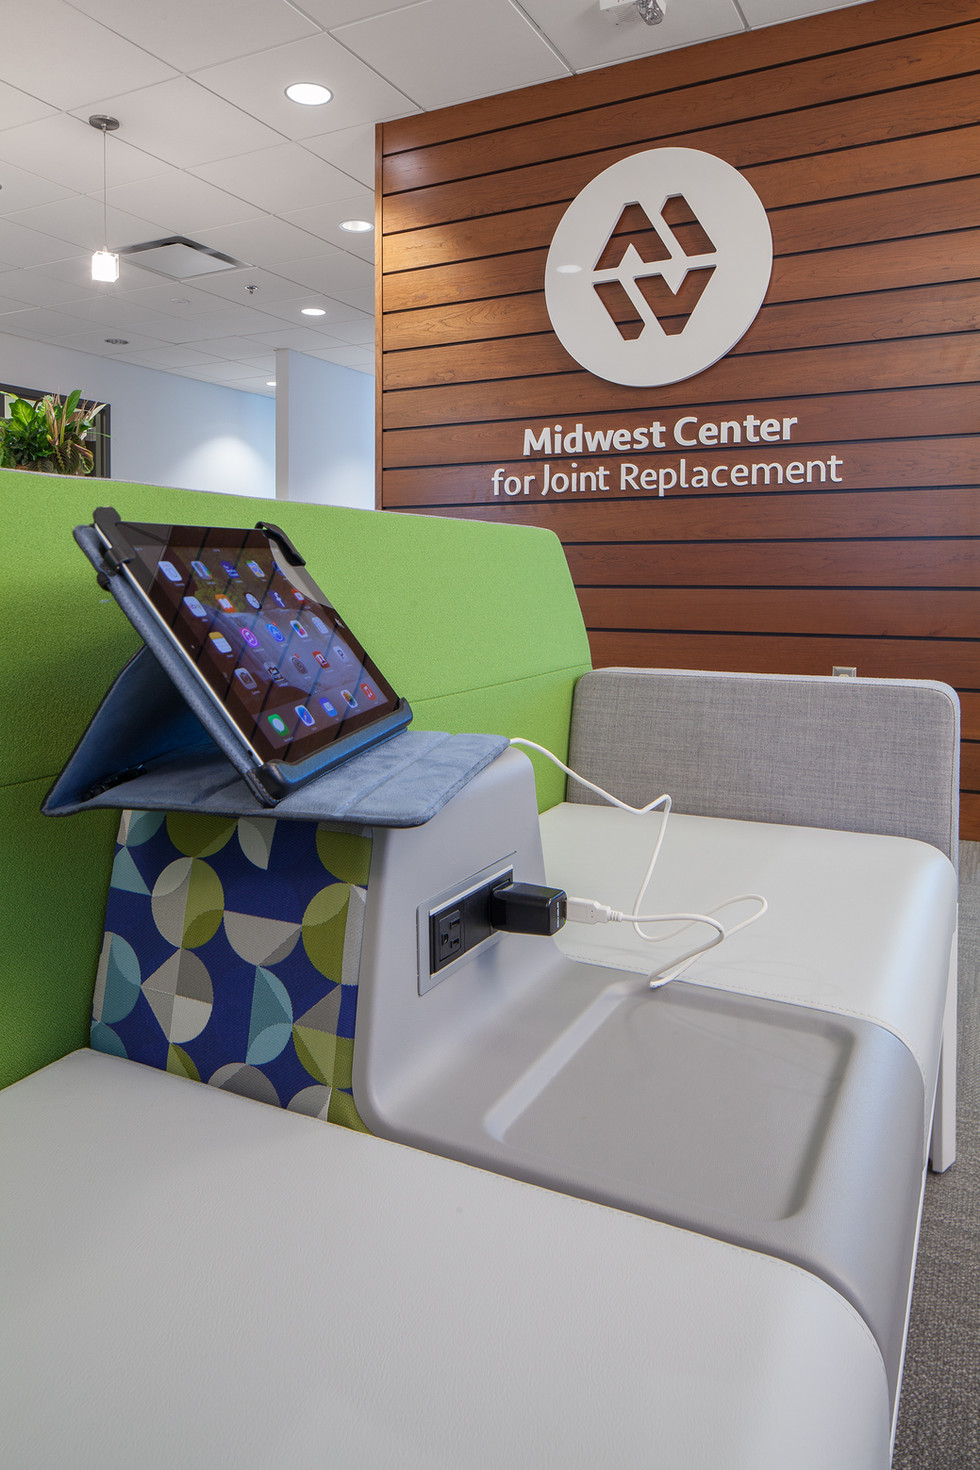 Detail, Midwest Center for Joint Replacement, Indianapolis, IN